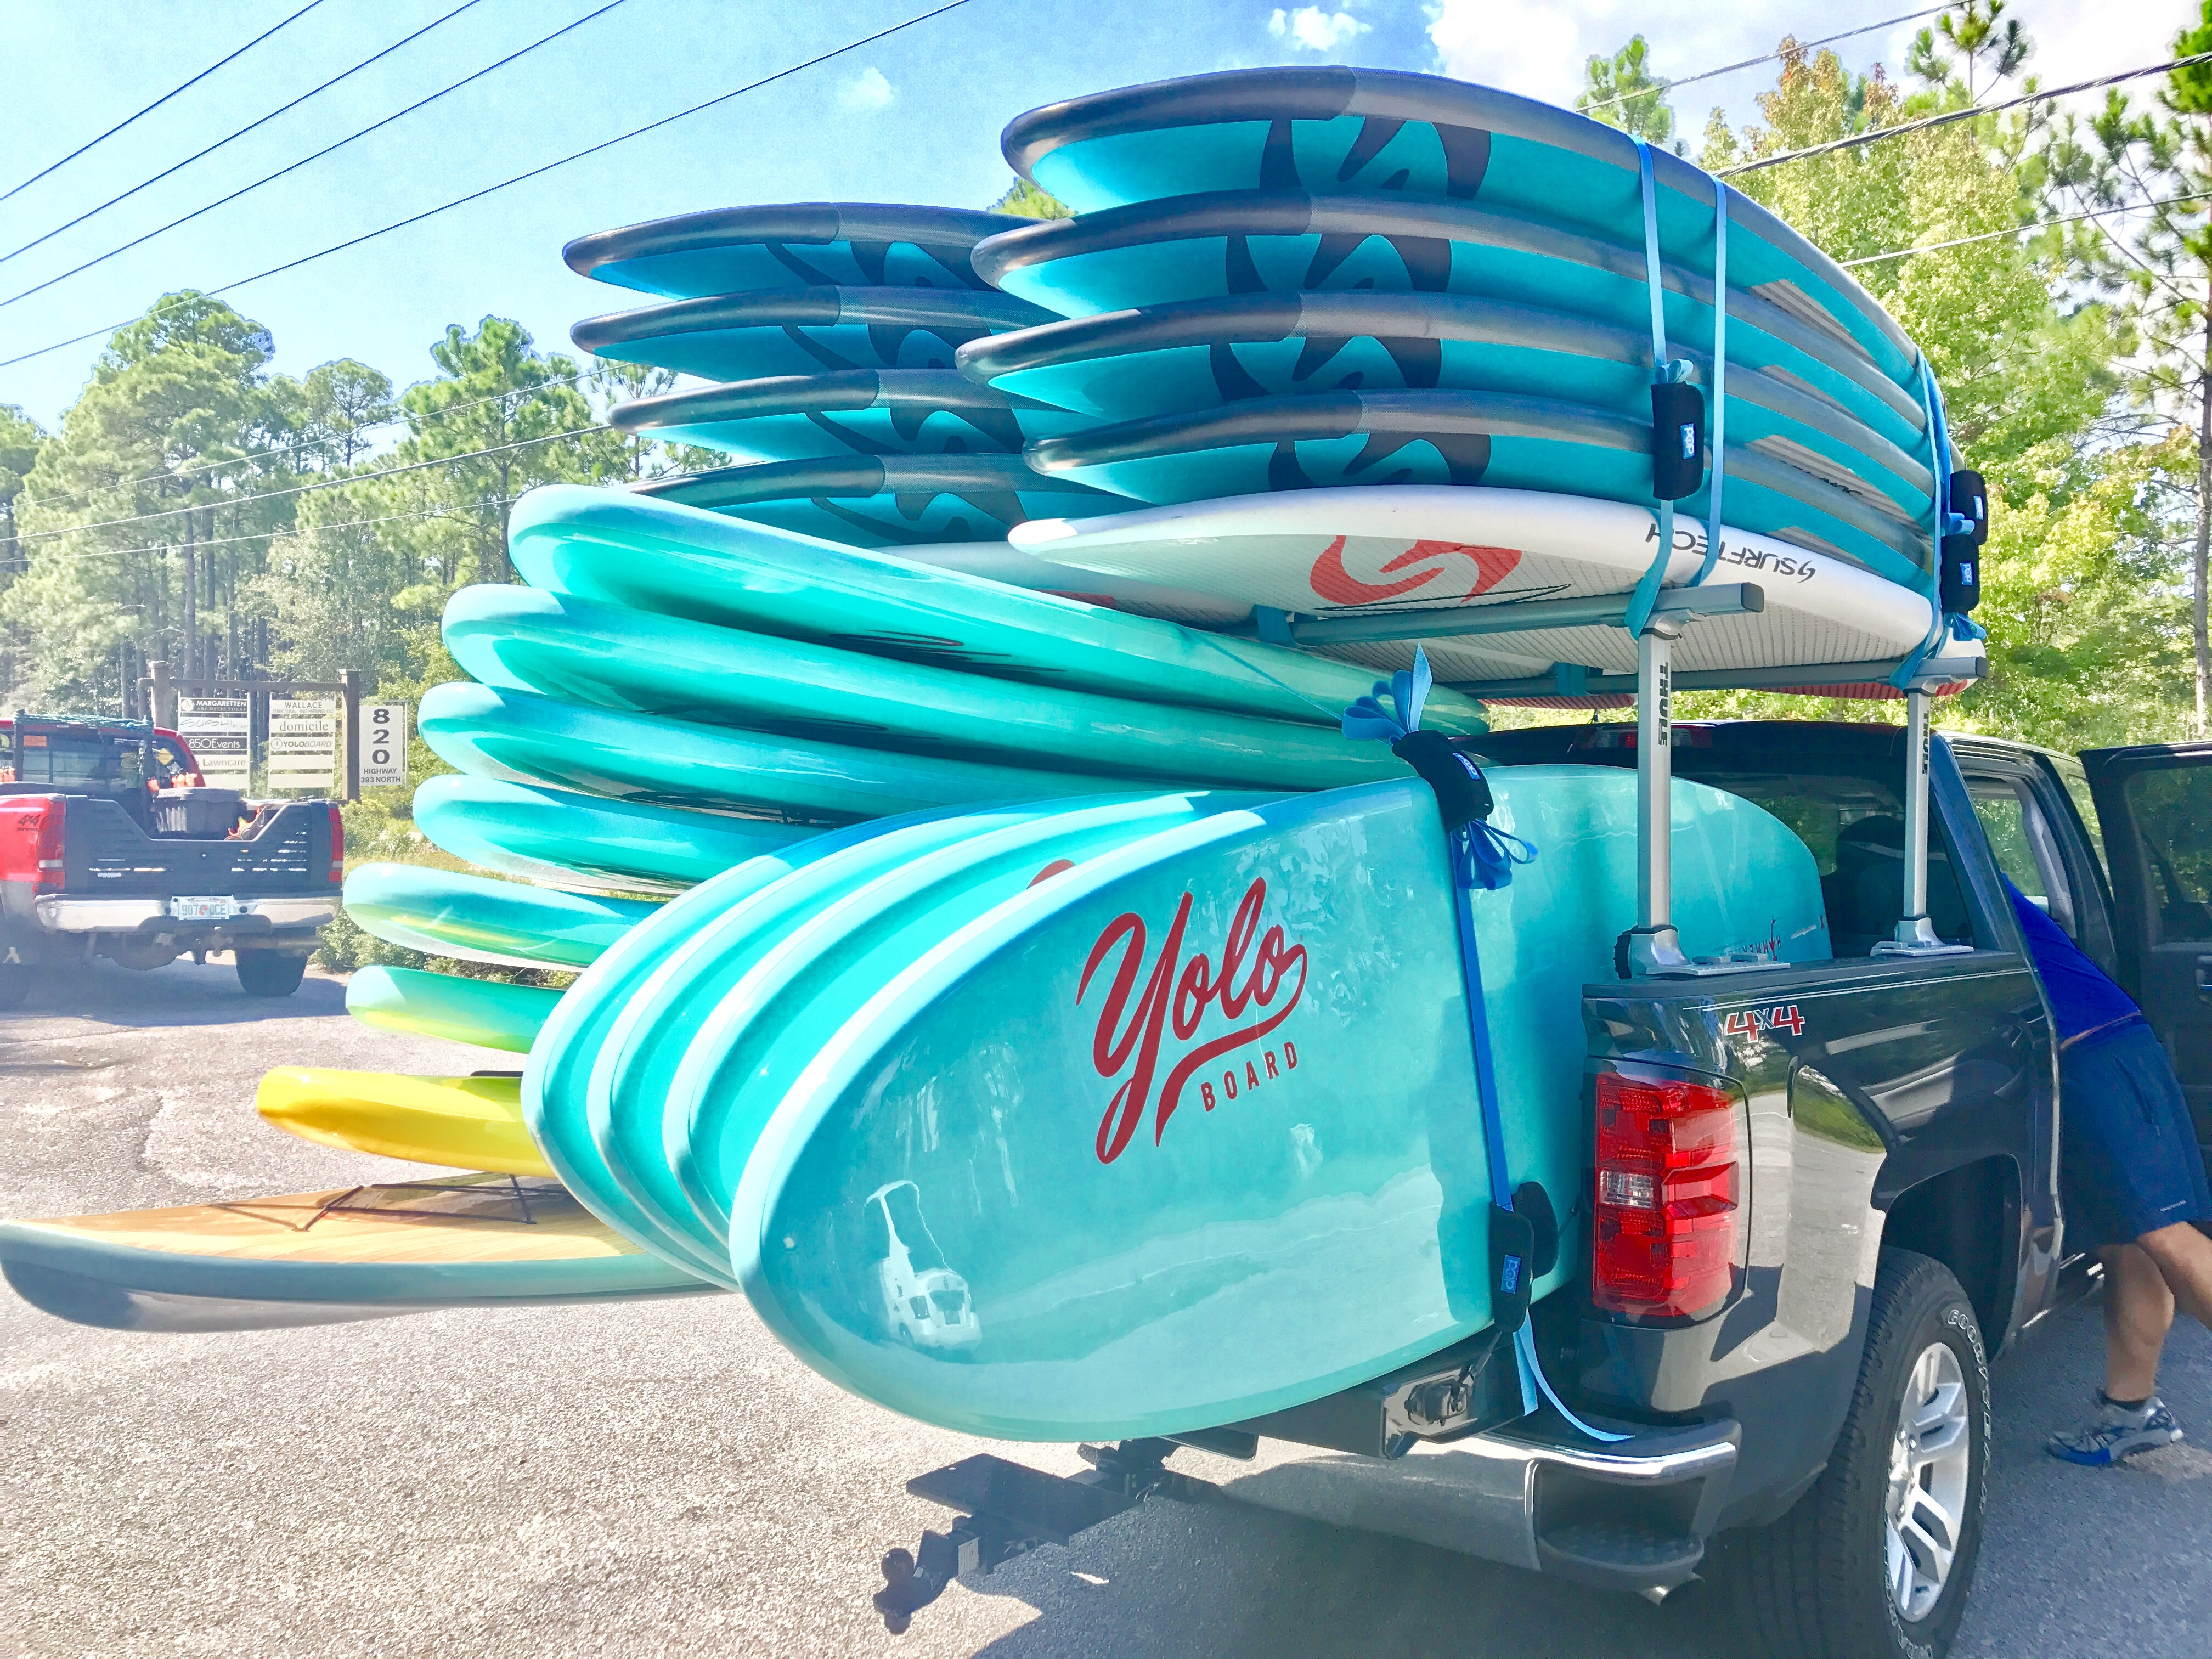 The Rental Shop 30A New surftech and Yolo Paddle Board Rentals in Santa Rosa Beach FL